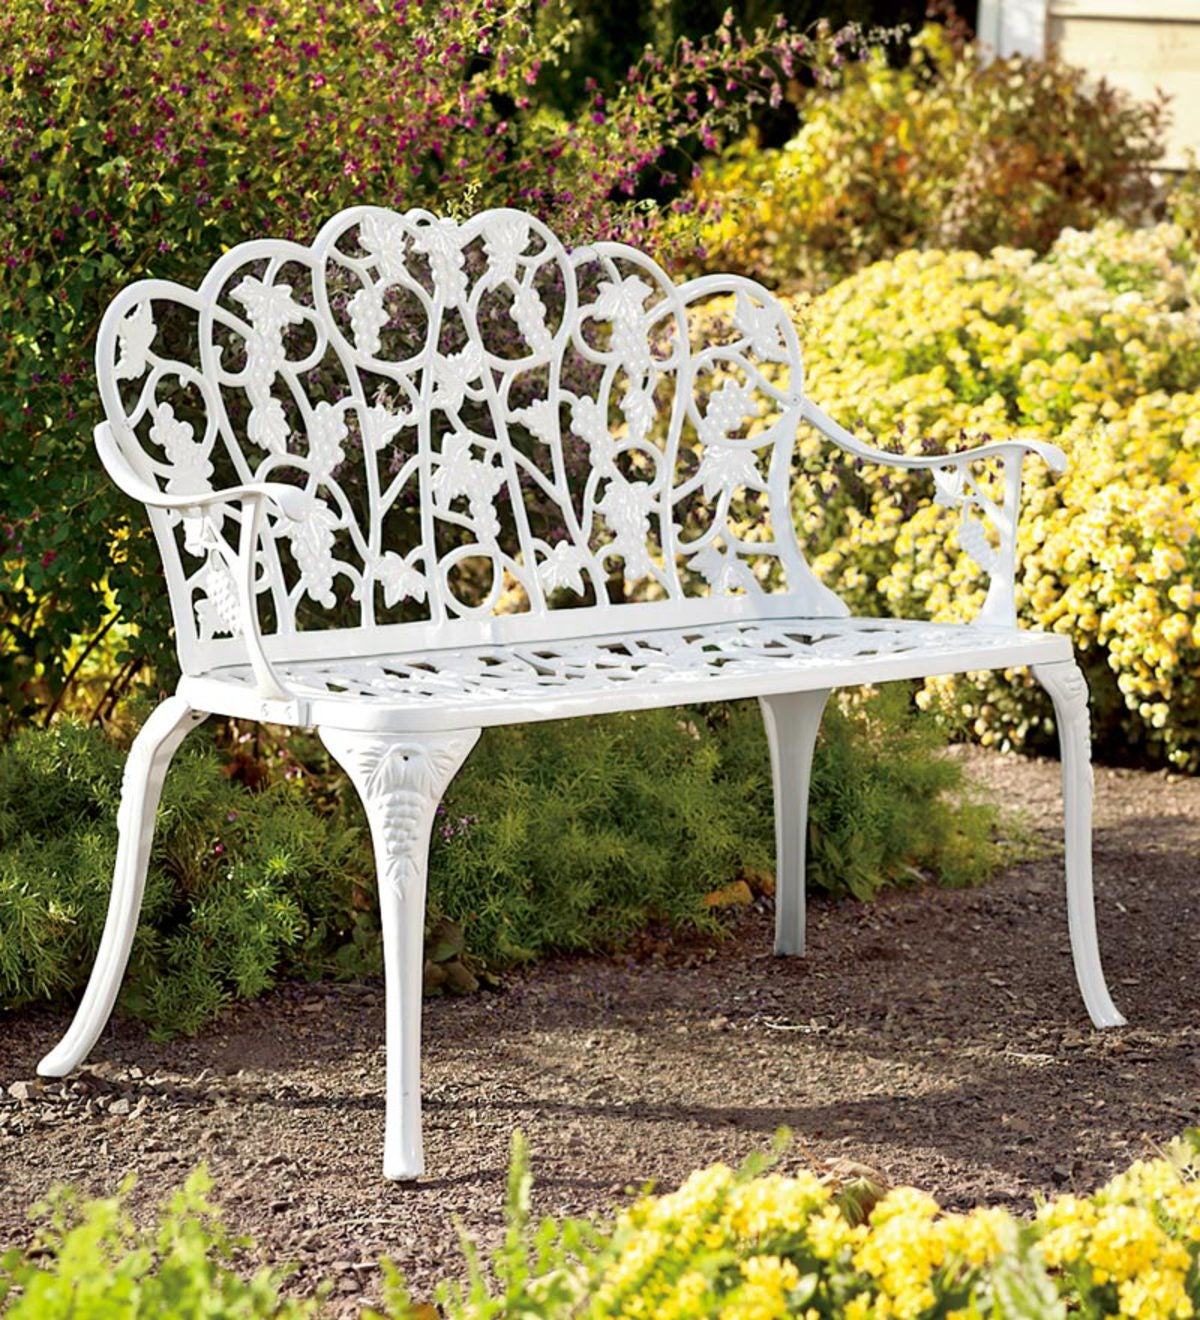 Grapevine Garden Bench in Powder-Coated Aluminum